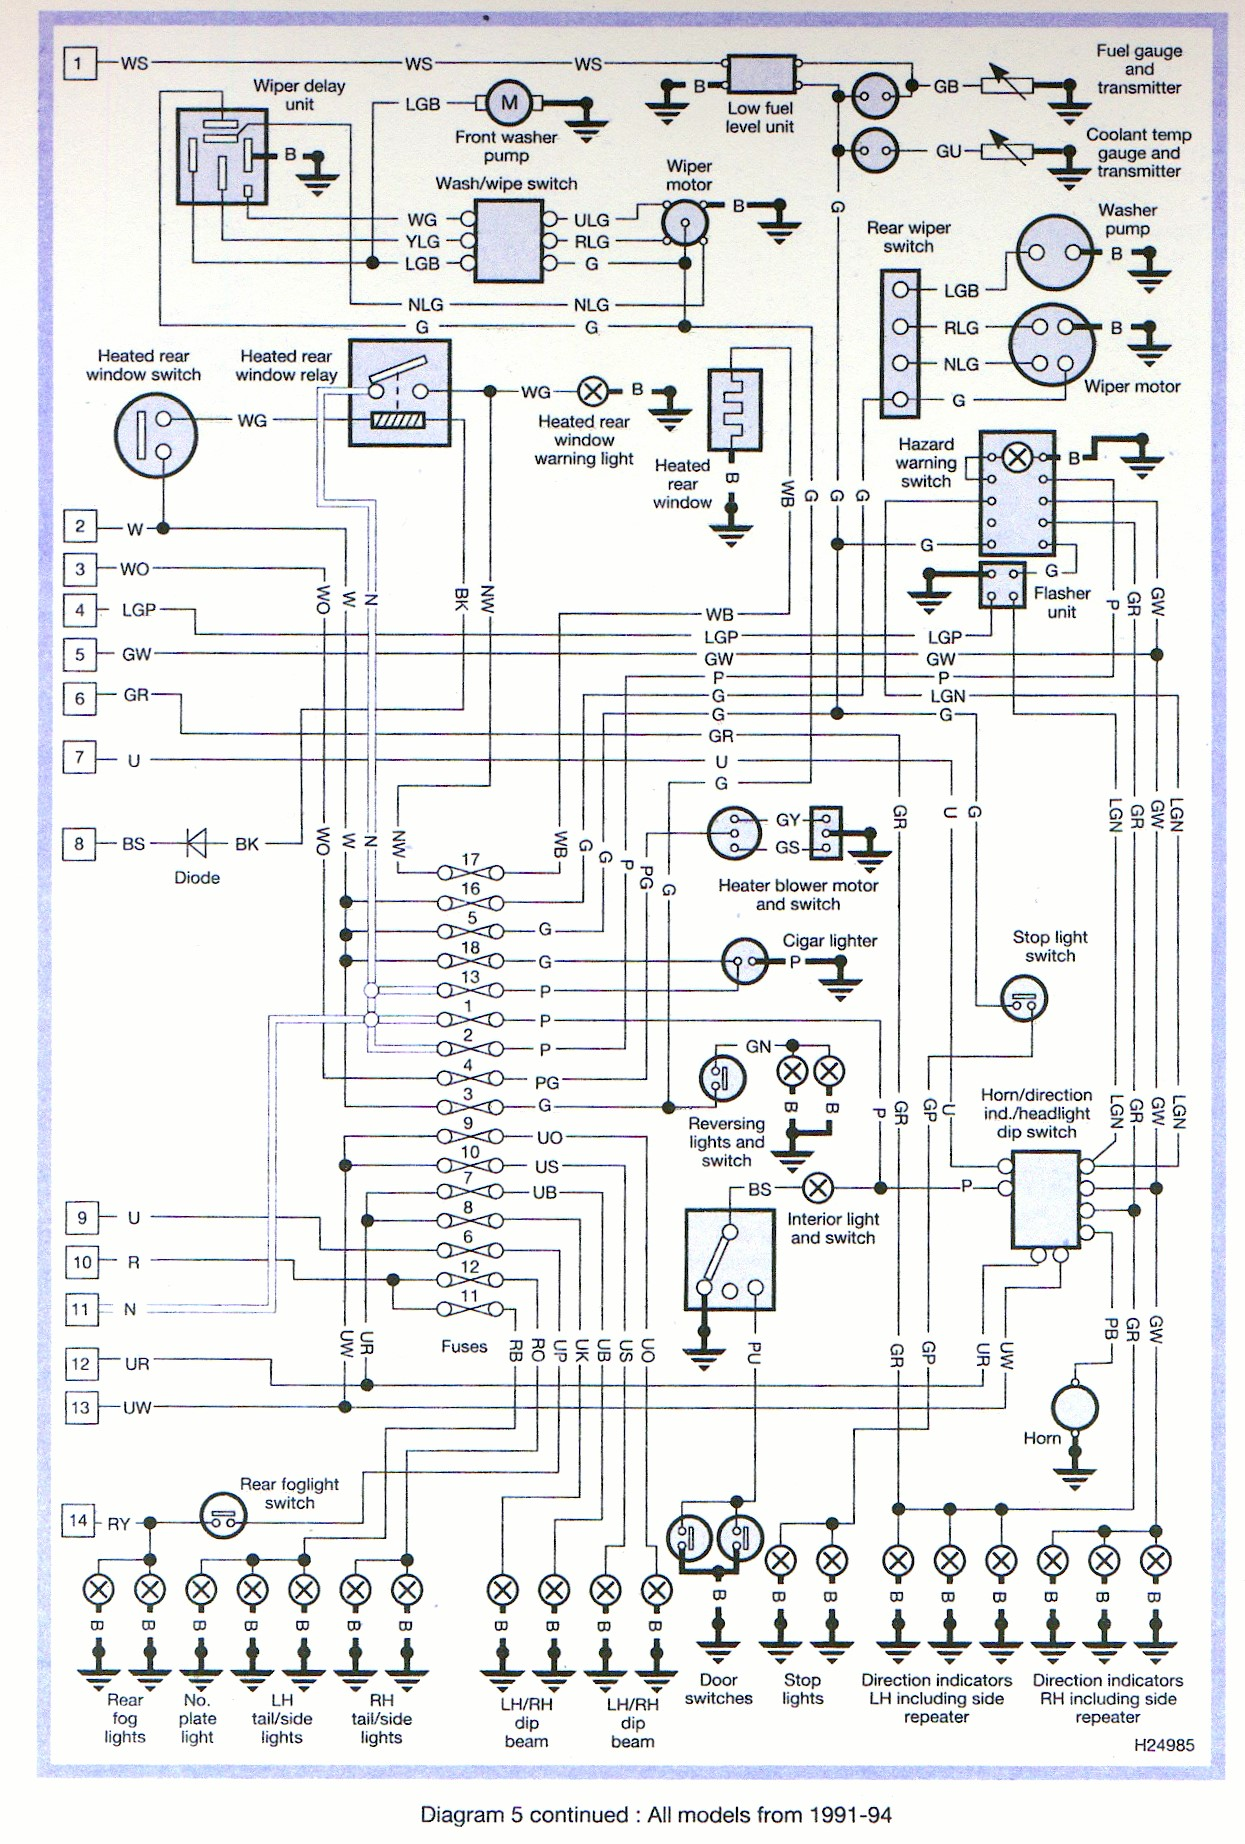 Land Rover 300 Tdi Wiring Diagram Schematics Discovery 300tdi Automotive Diagrams T Shirts